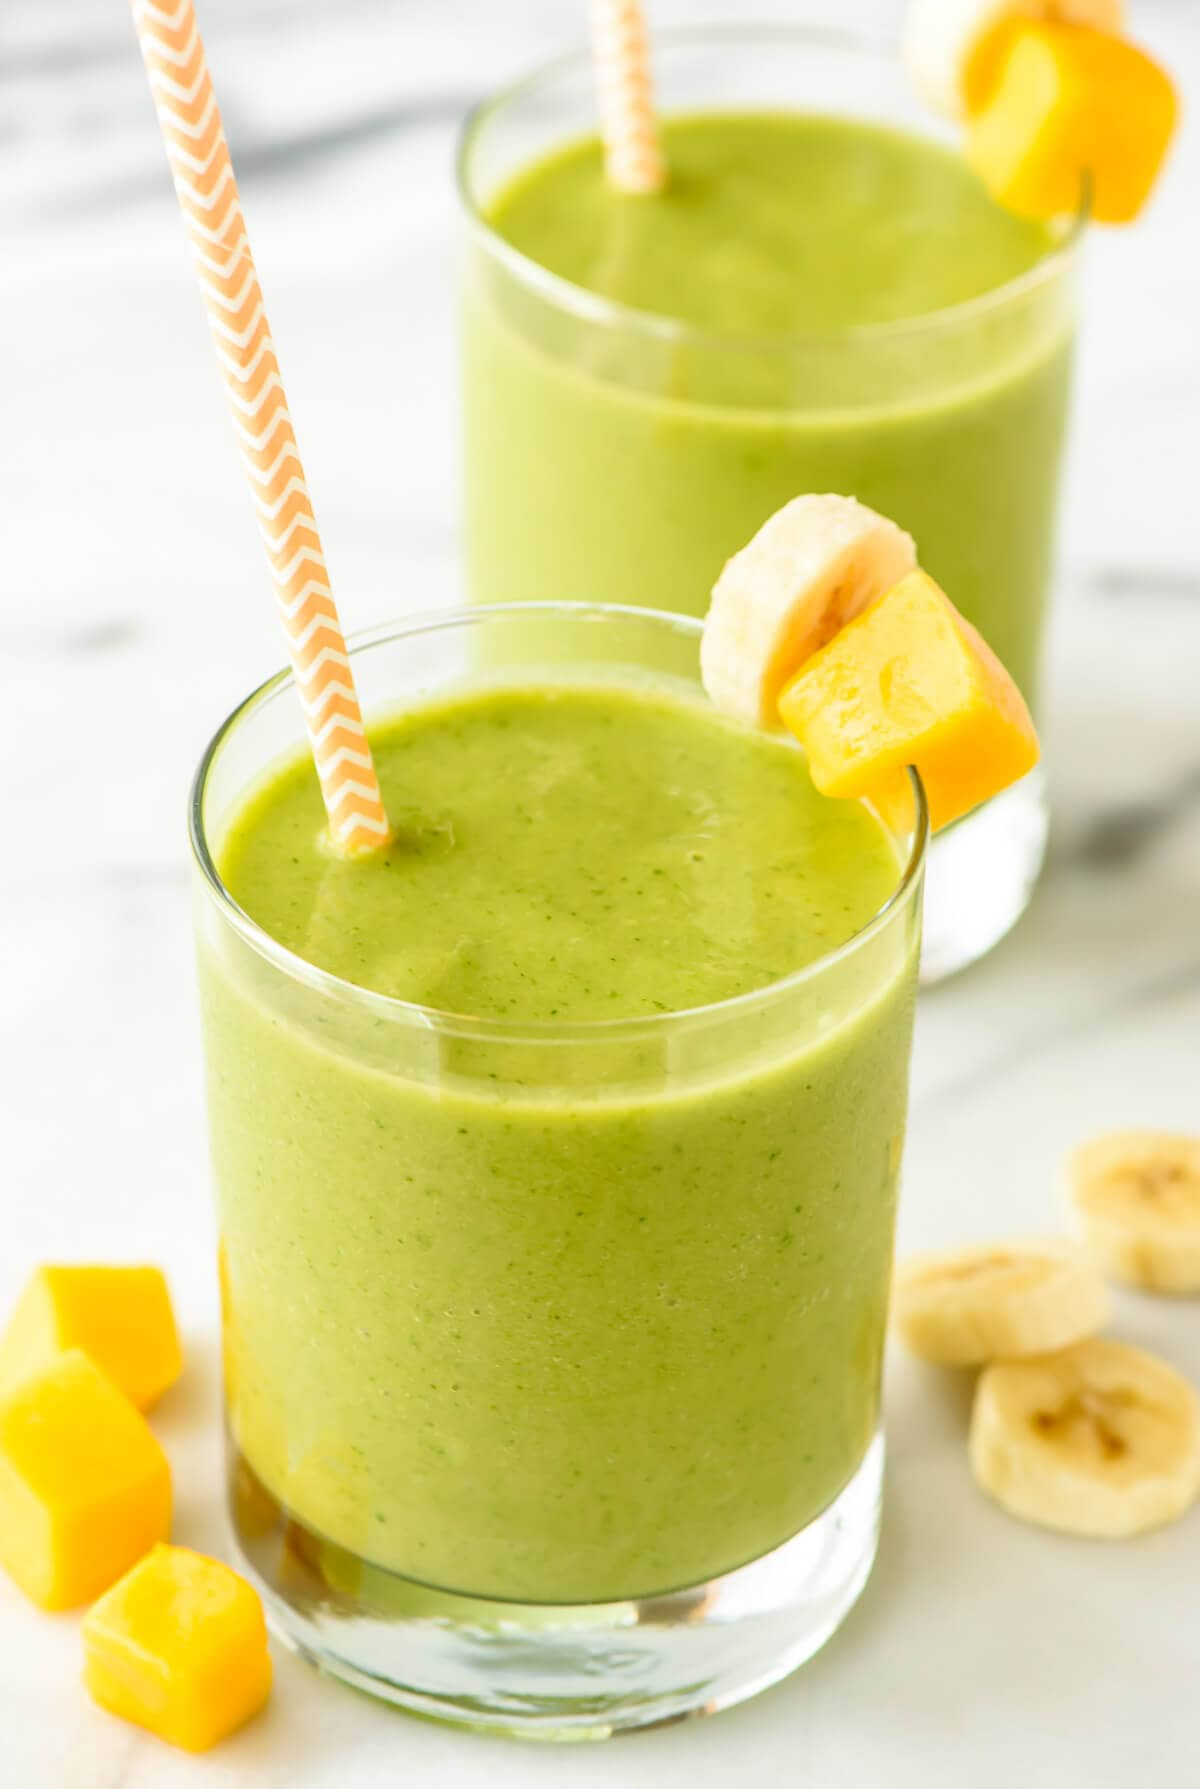 Mango green smoothies in glasses with straws